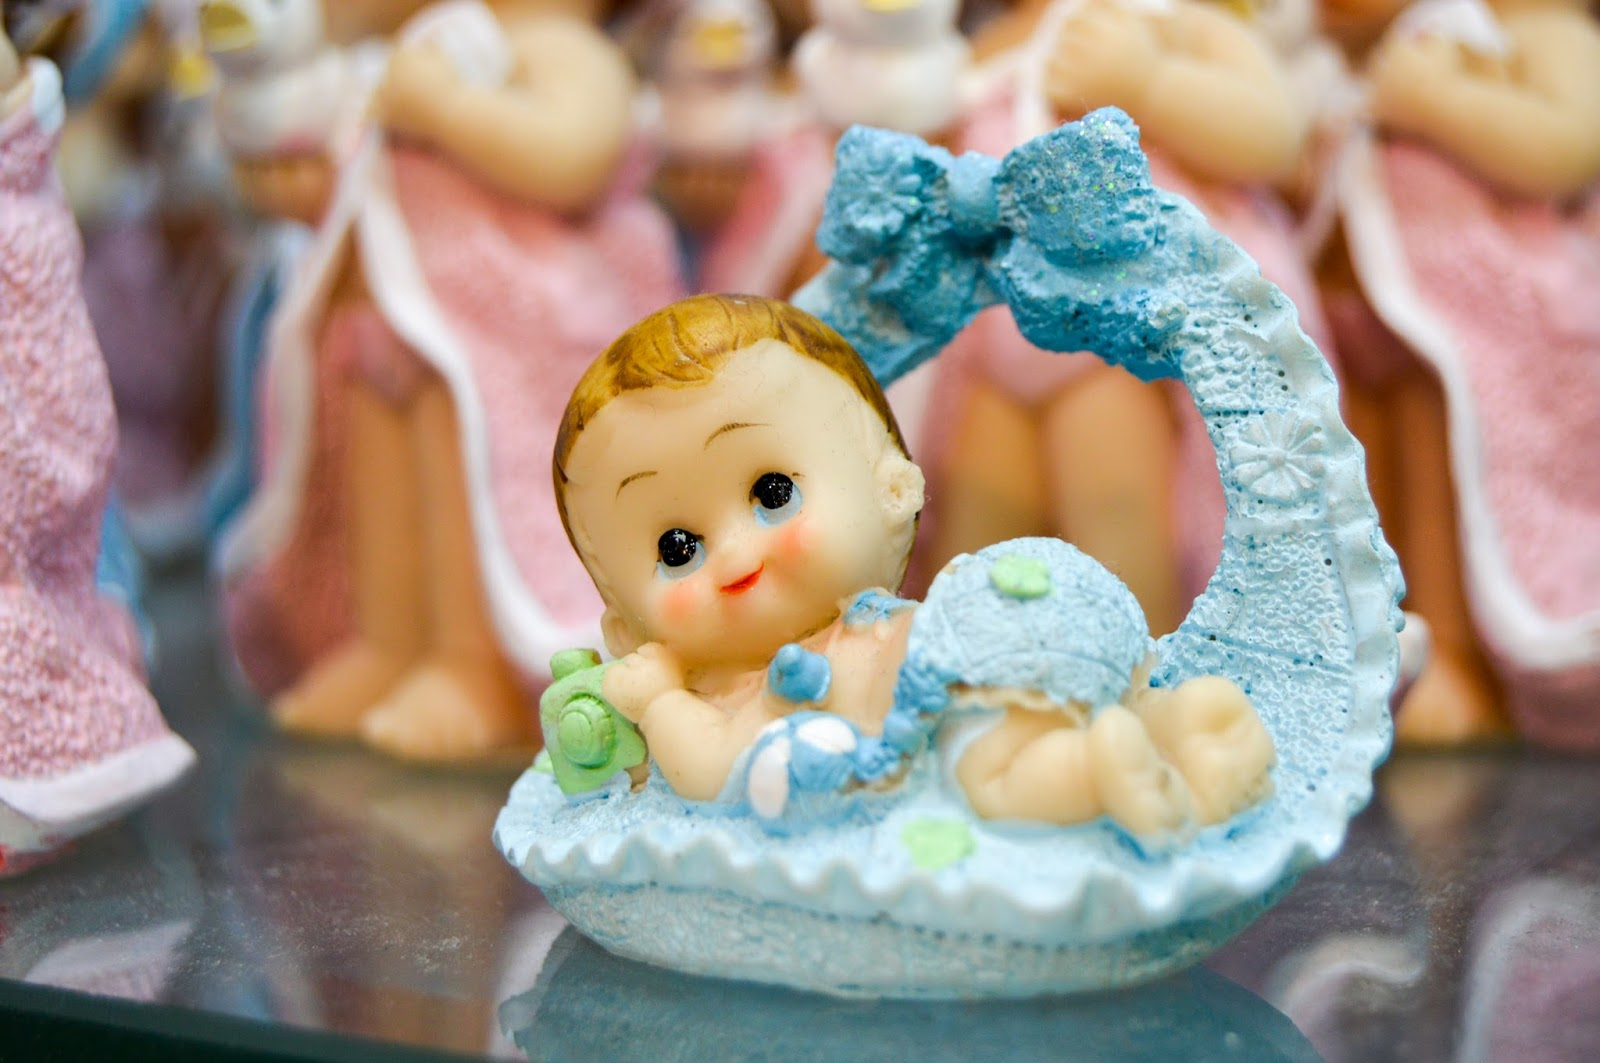 Cute Baby Show Piece - Free Stock Photos - Free Images & Wallpapers